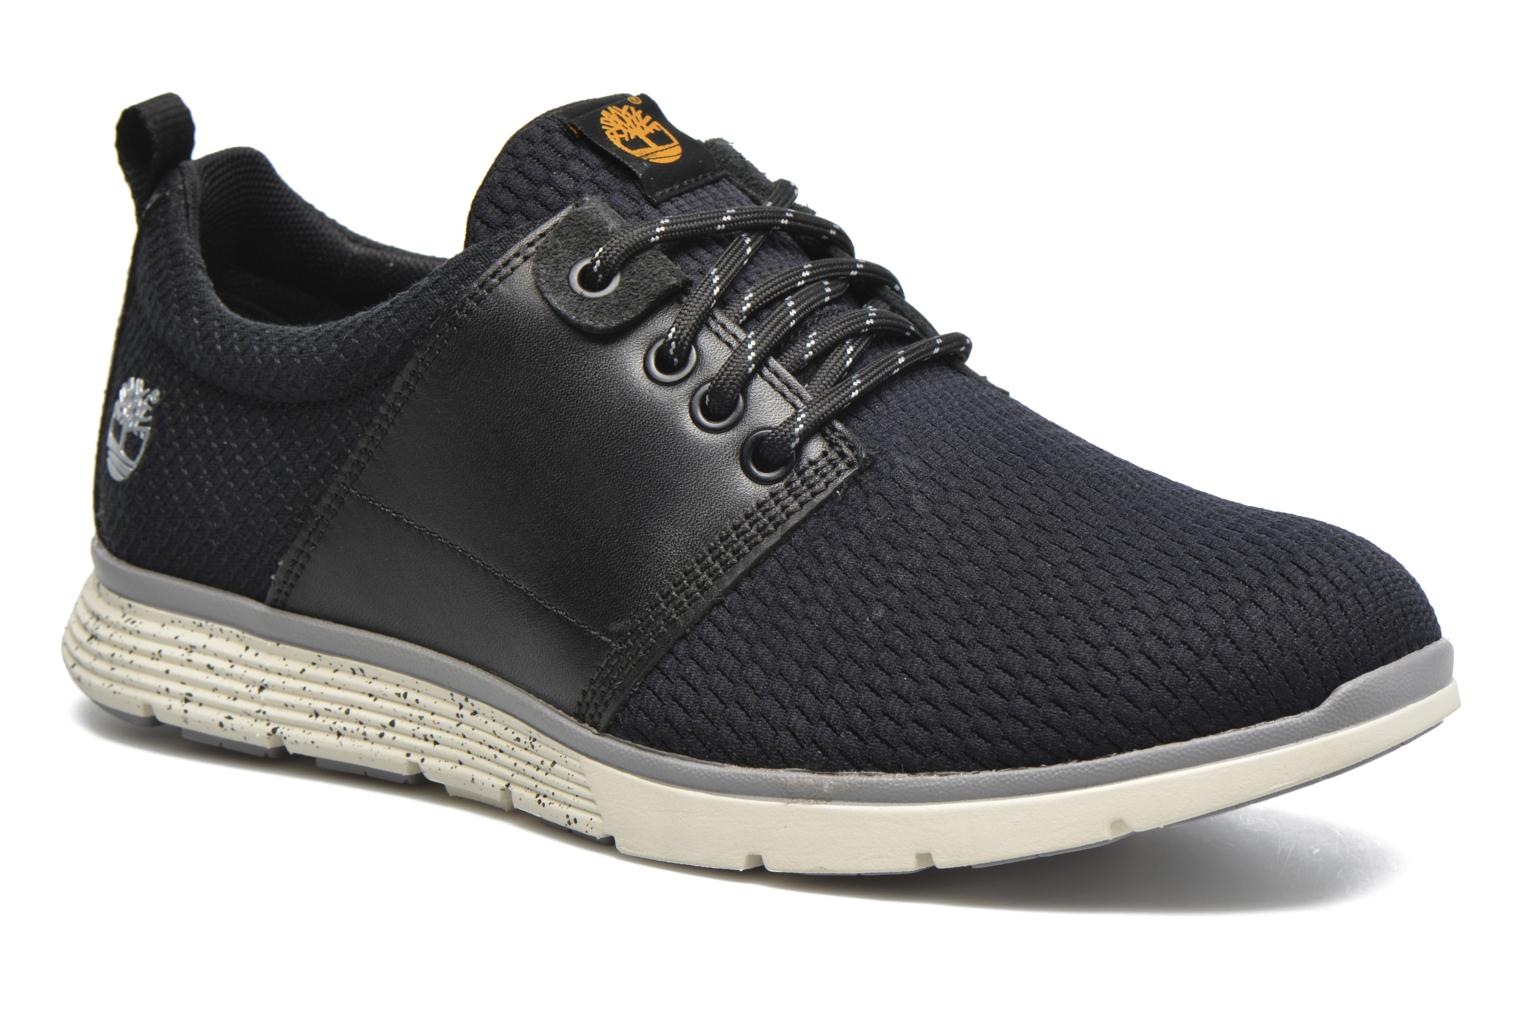 Timberland Killington L/f Oxford top quality for sale outlet best prices sale choice outlet low price lowest price online sB0hARgeA